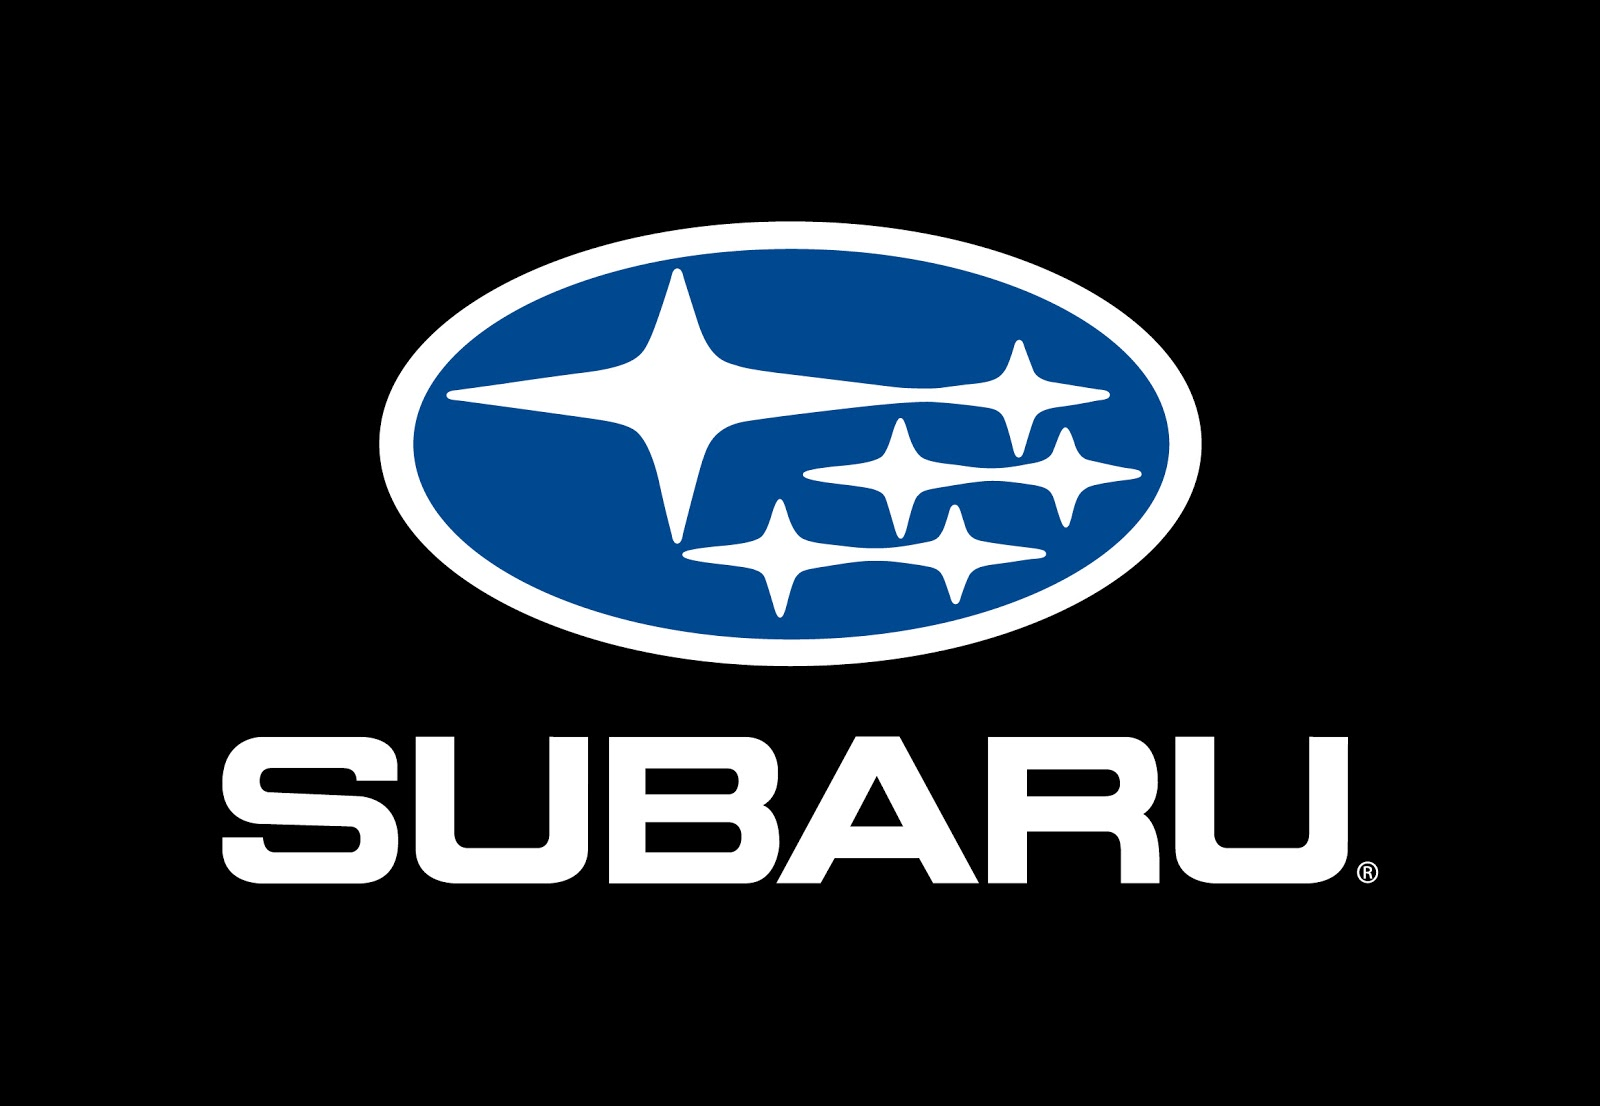 All Cars Logo With Name >> Subaru Logo | Auto Cars Concept